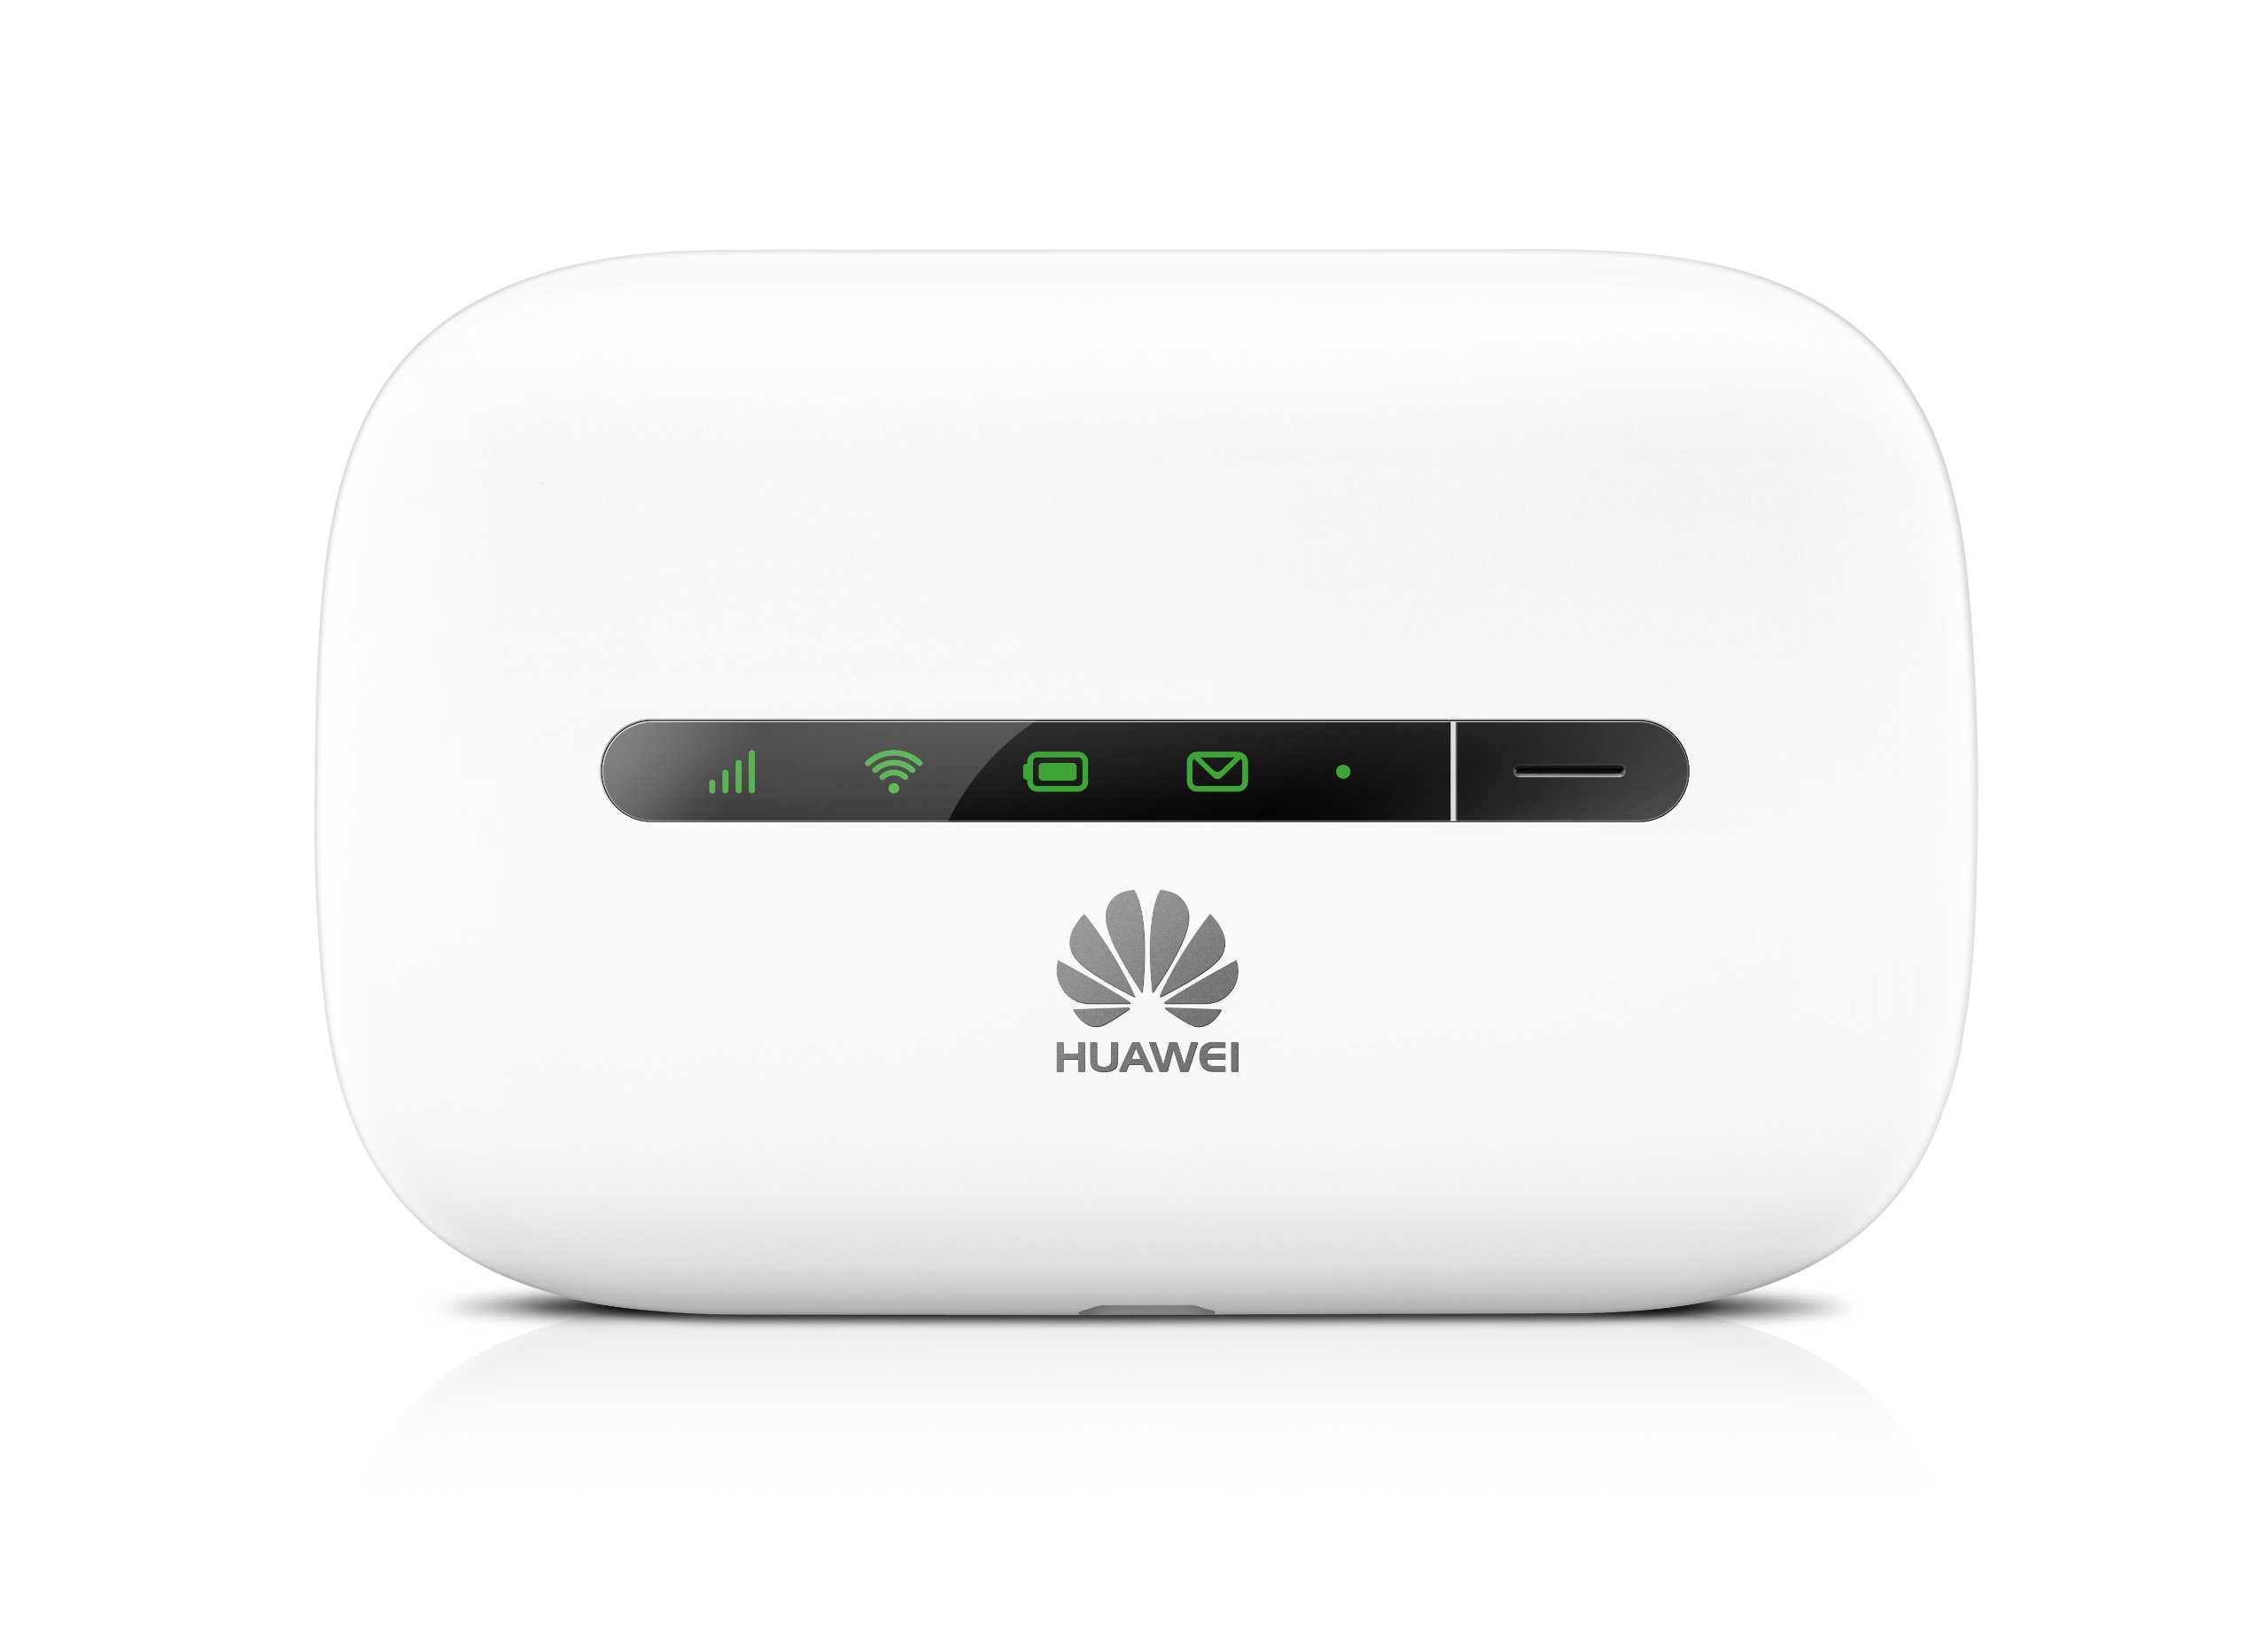 Huawei E5330Bs-2 3G Mobile WiFi Hotspot (3G in Europe, Asia, Middle East & Africa), OEM/ORIGINAL from Huawei. White by HUAWEI